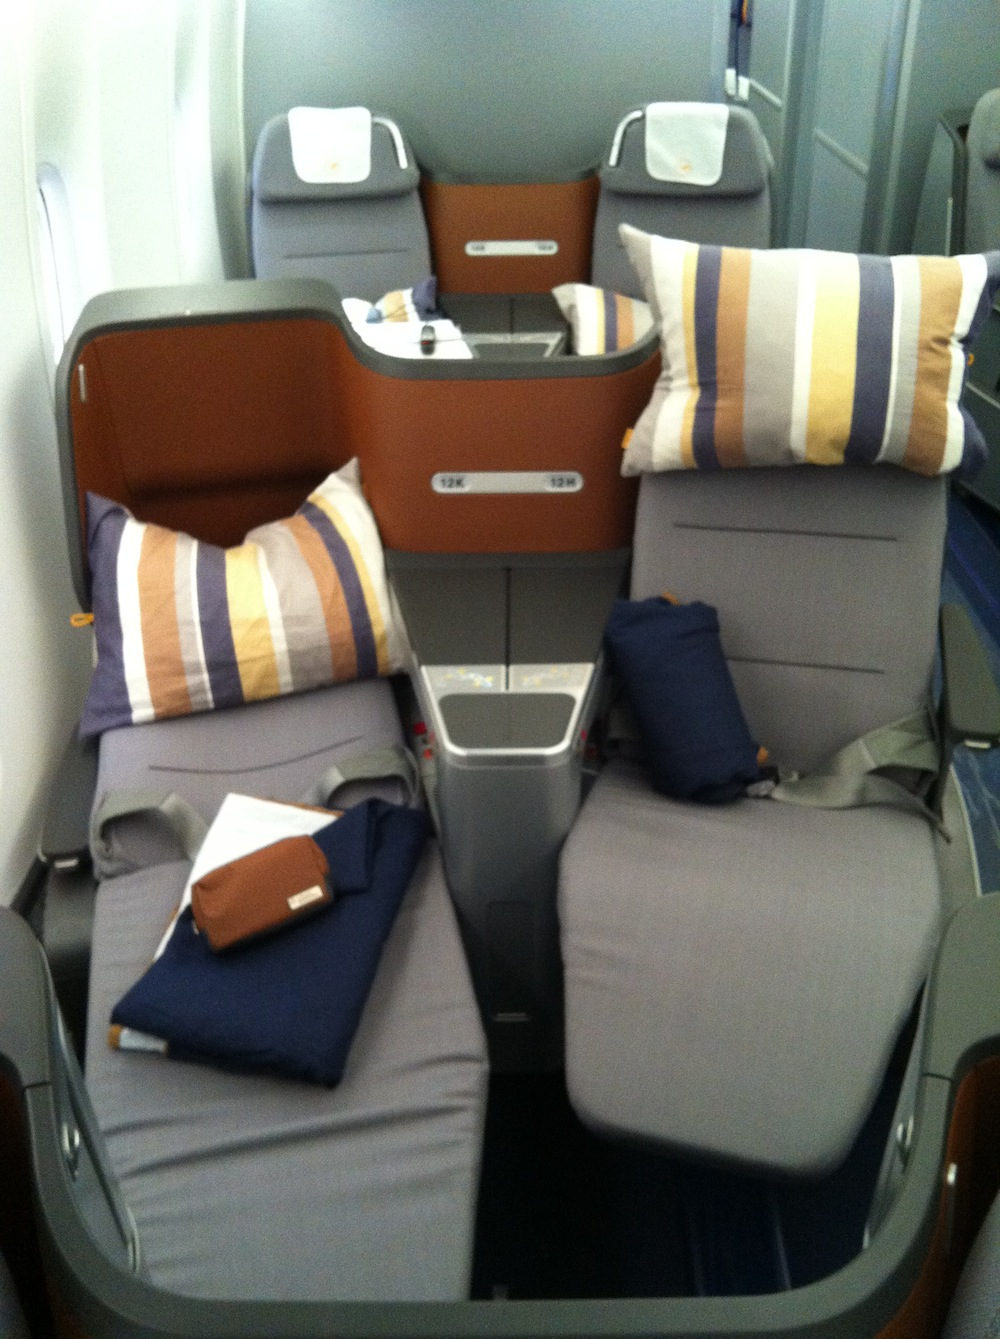 The V seats, when reclined, are tricky to escape for the window passenger